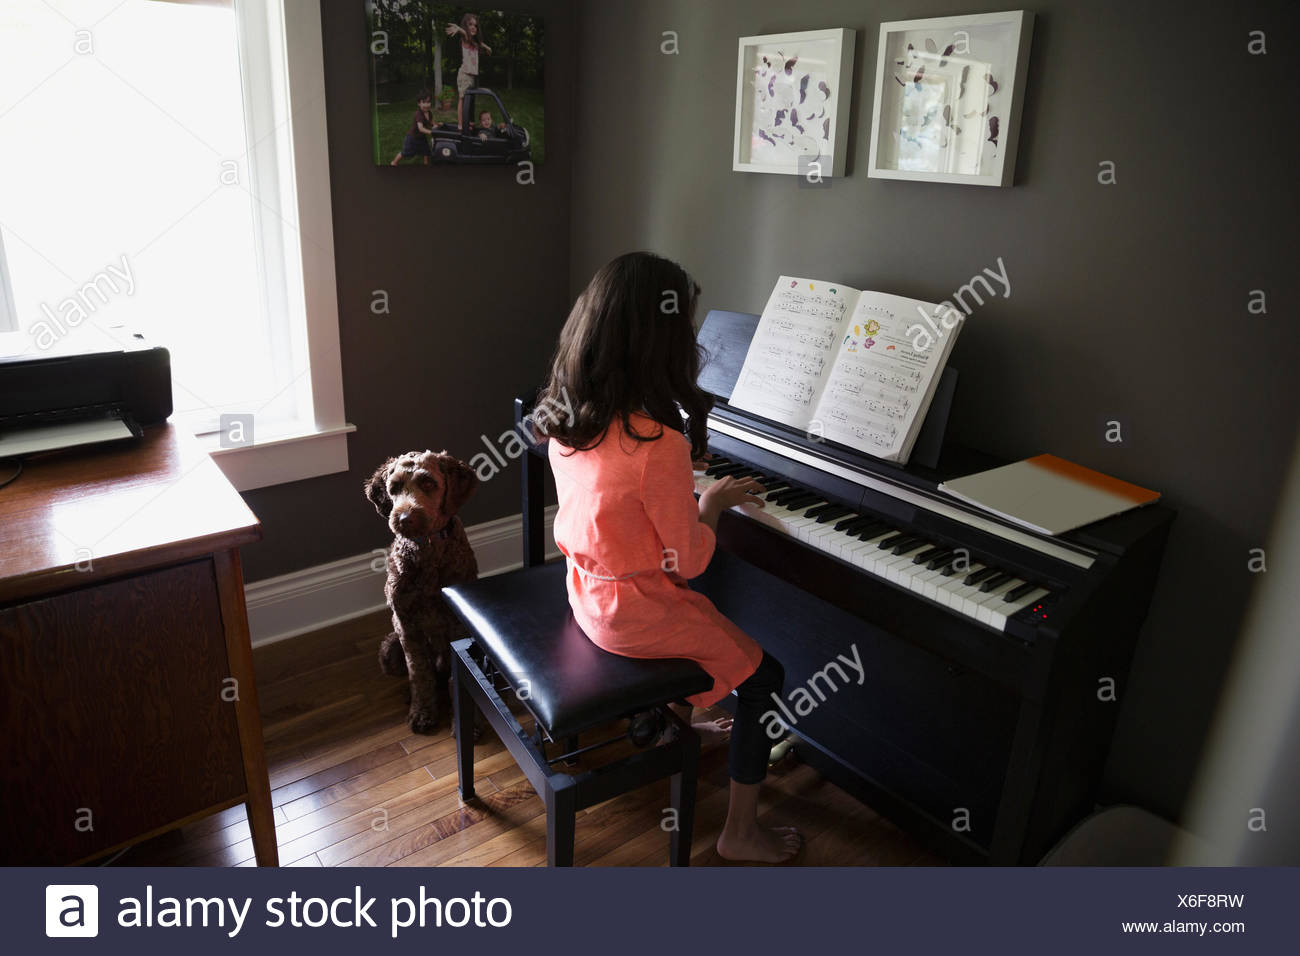 Dog waiting for girl playing piano - Stock Image